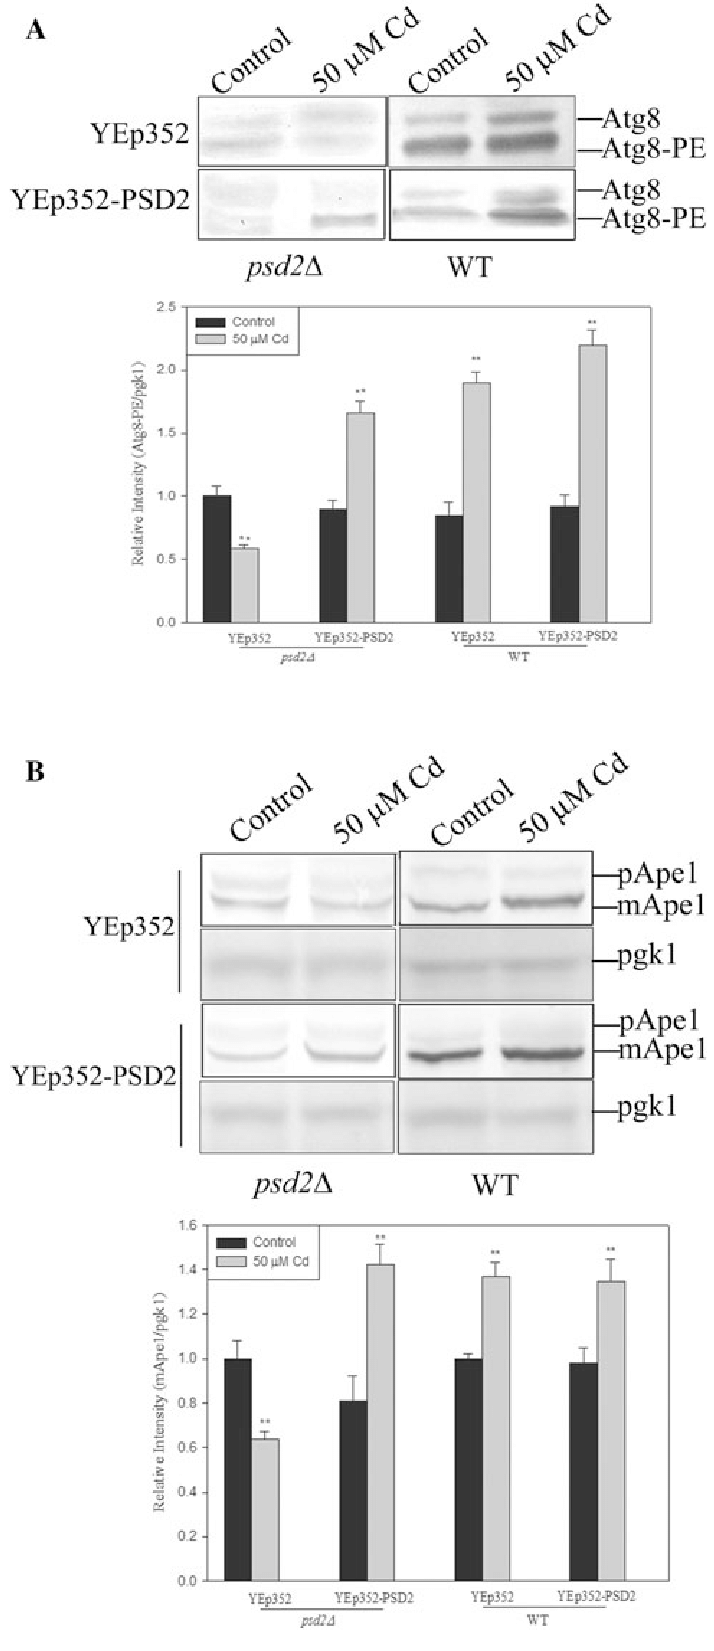 Lipidation of Atg8 and processing of Ape1 increased in